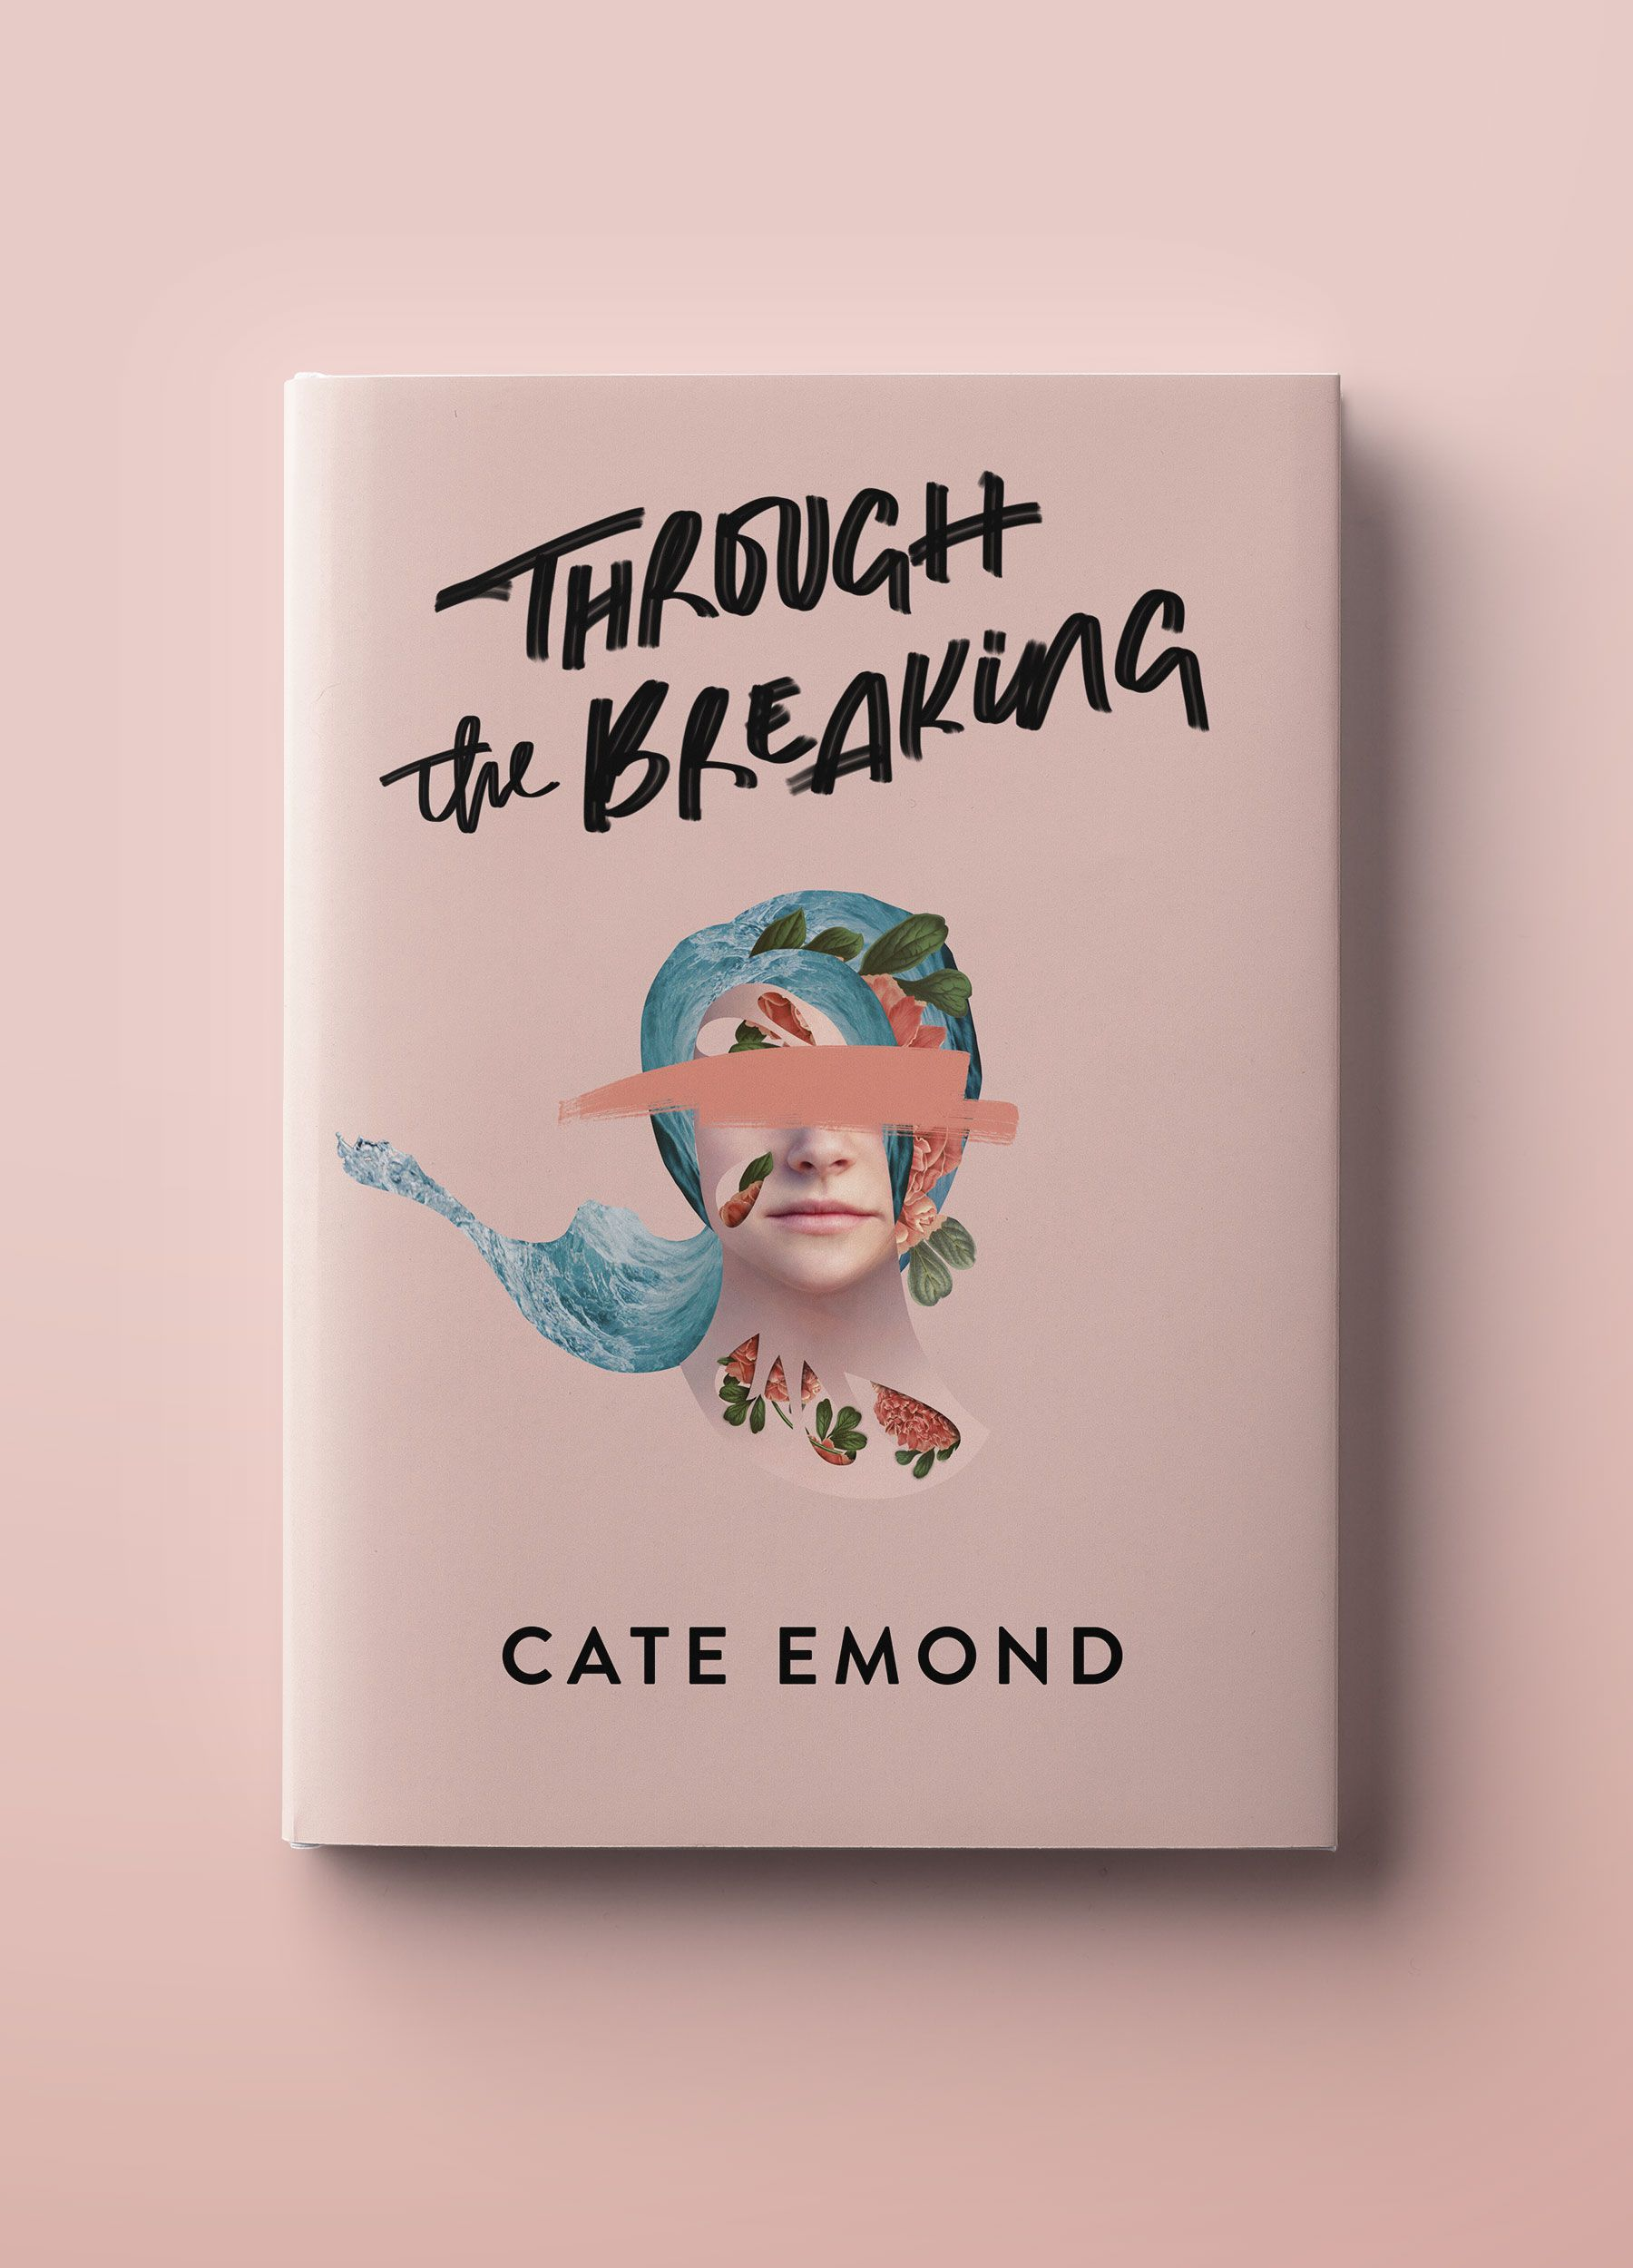 Inspired English - book cover design by Penguin Boy for